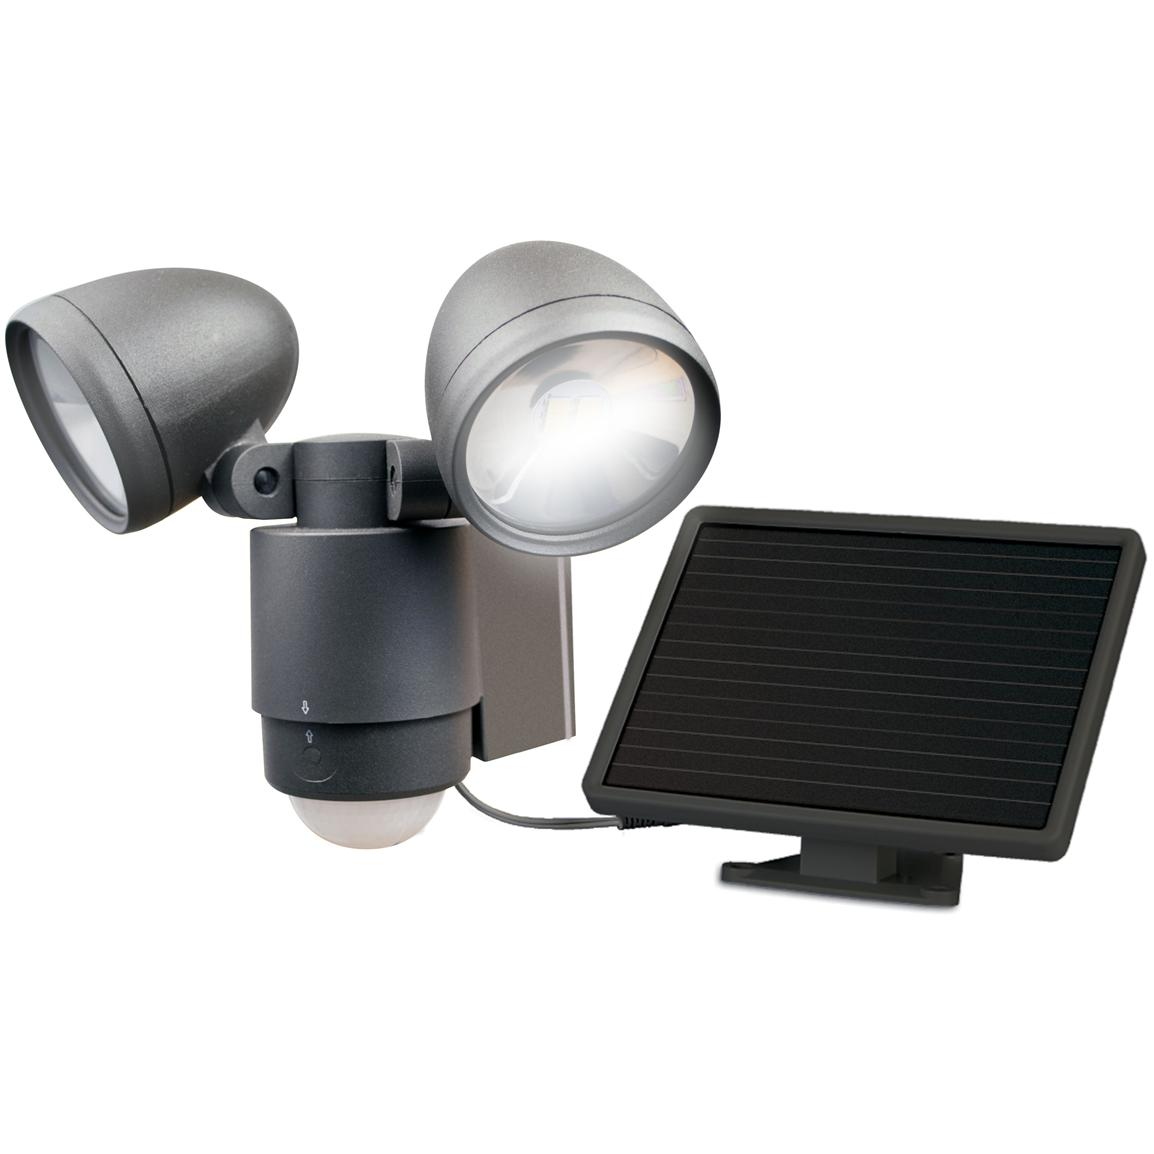 Maxsa Motion-Activated 495 Lumen Dual Head Solar LED Spotlight, Black